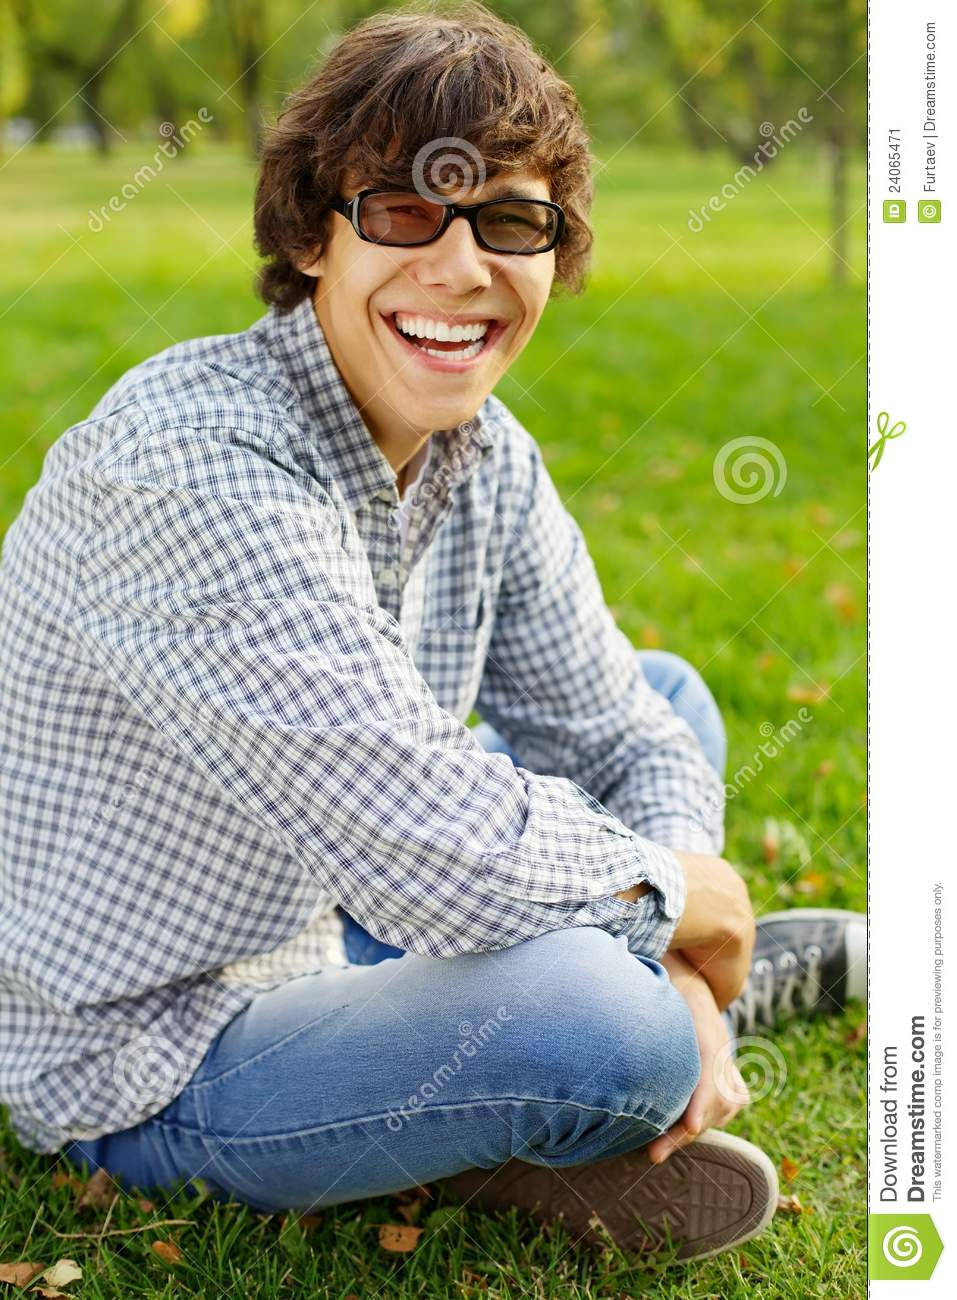 Funny teenager laughs in park